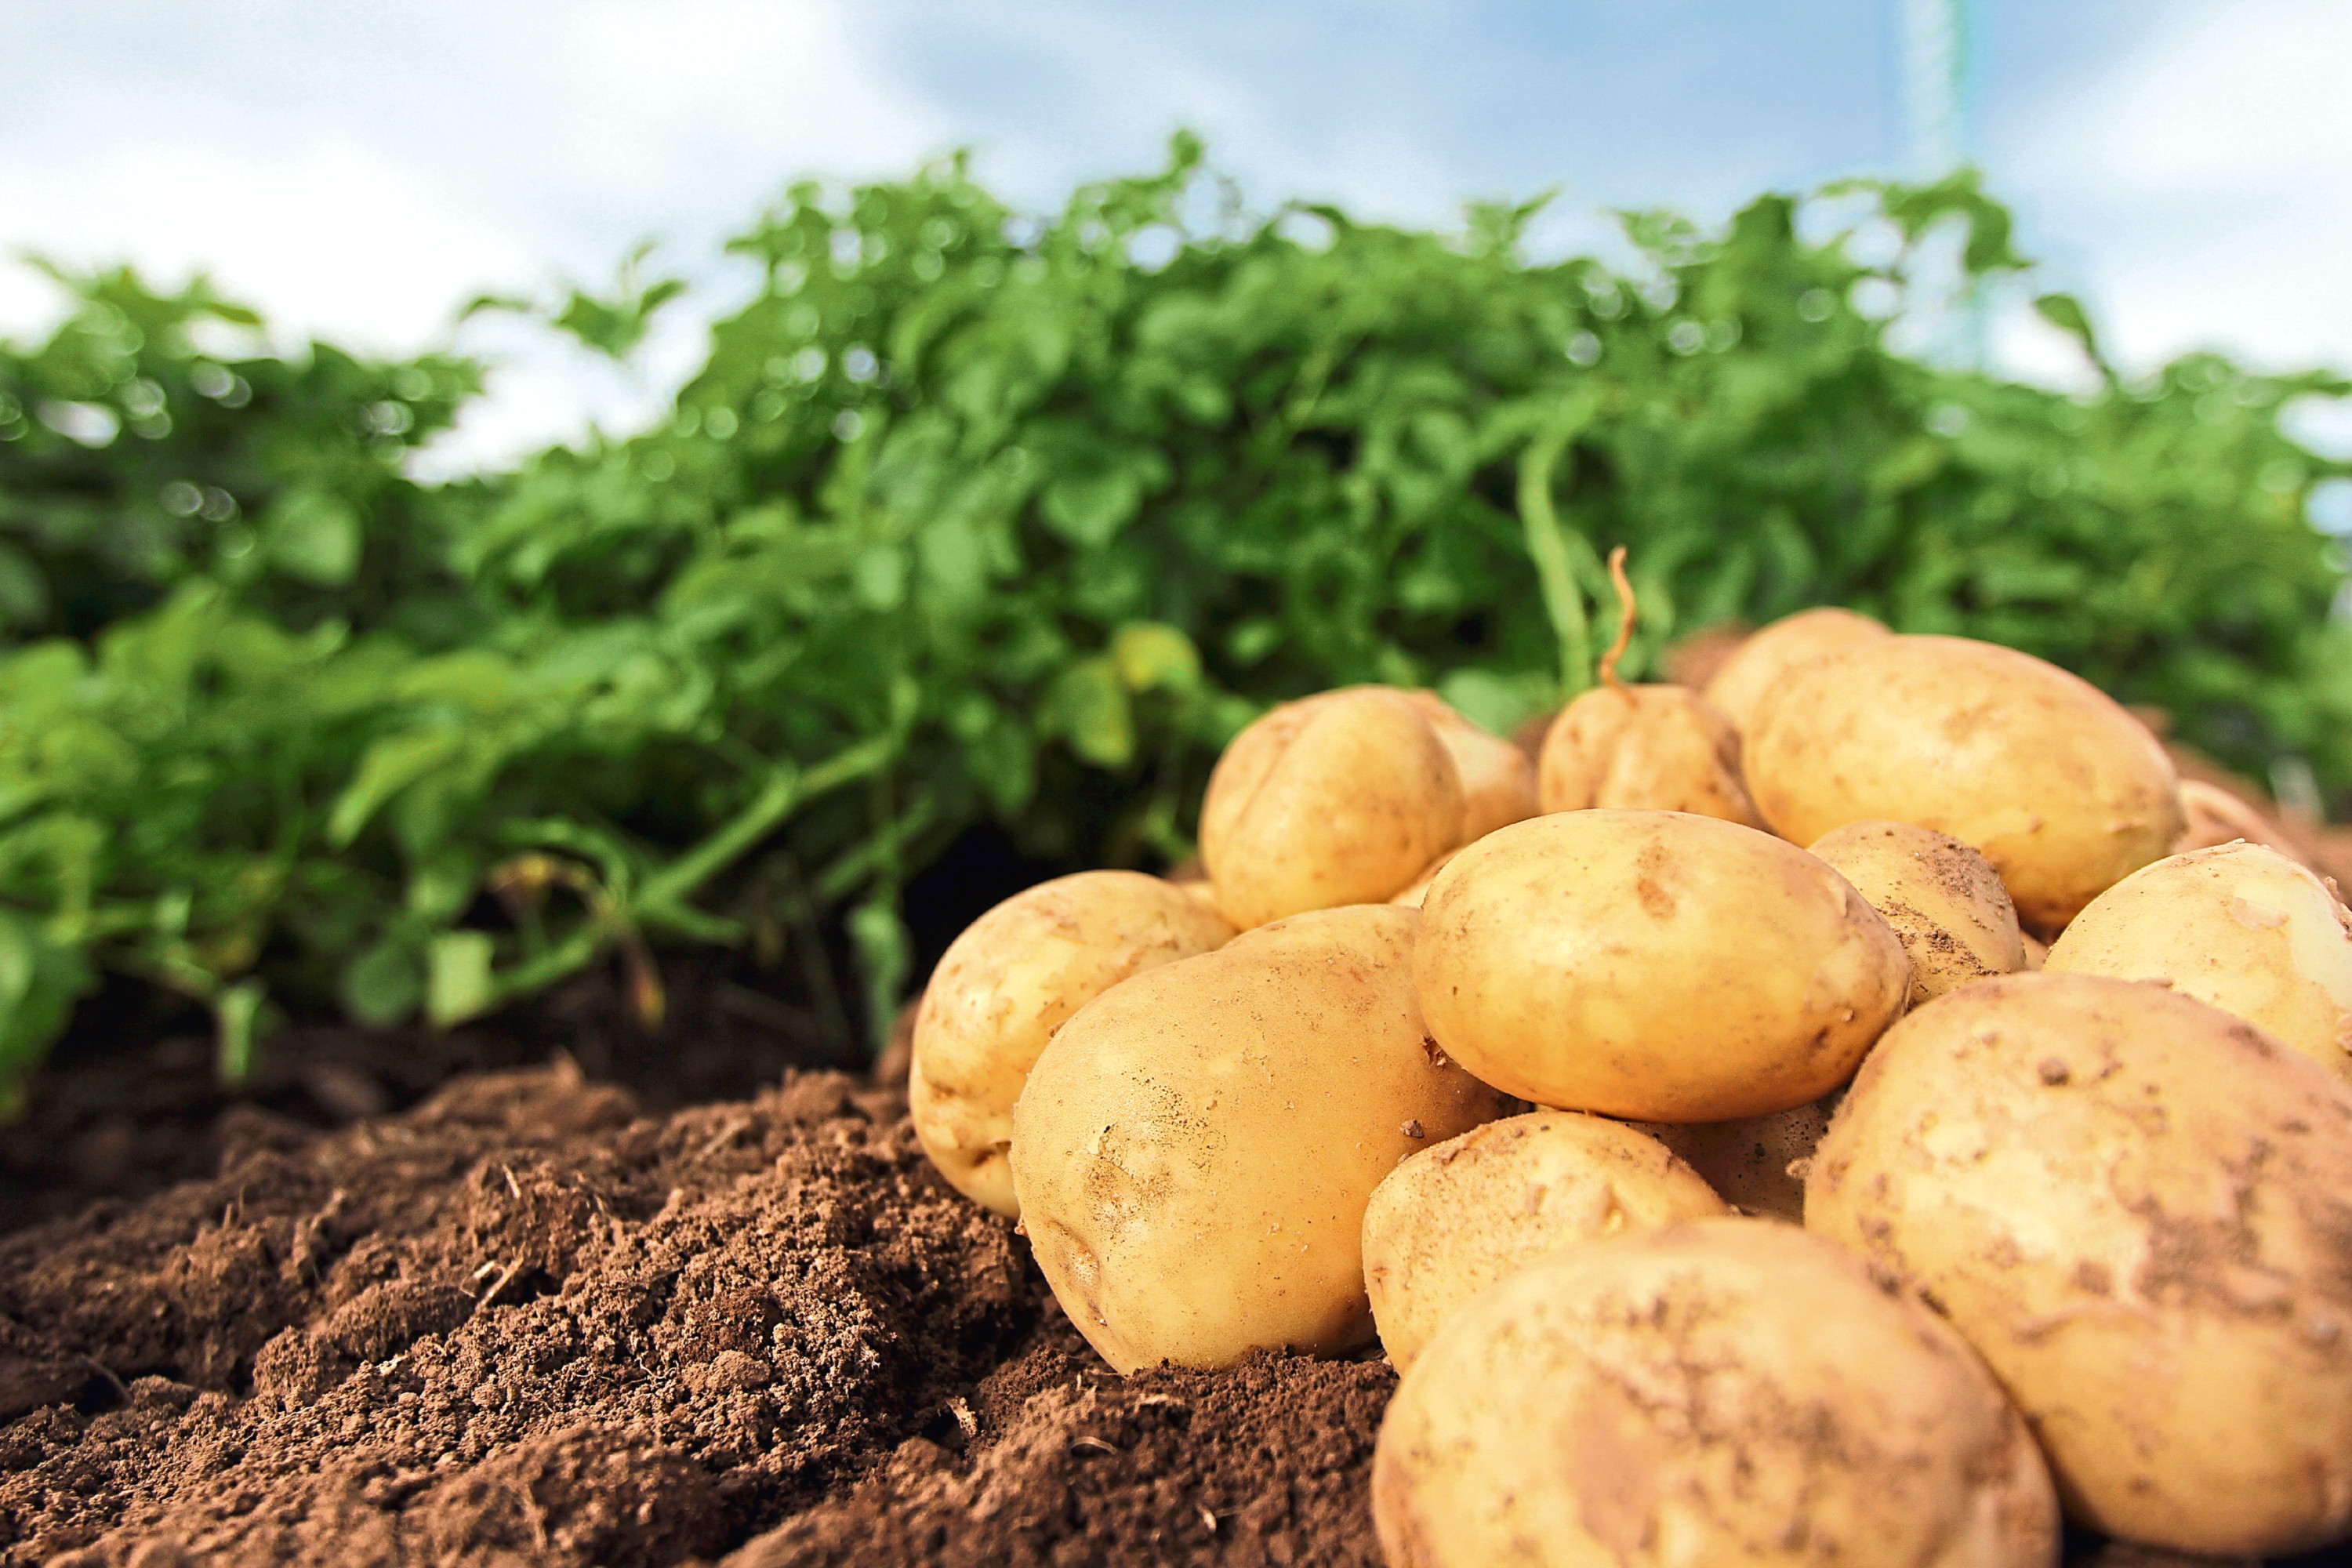 Potatoes in Practice takes place on the outskirts of Dundee.